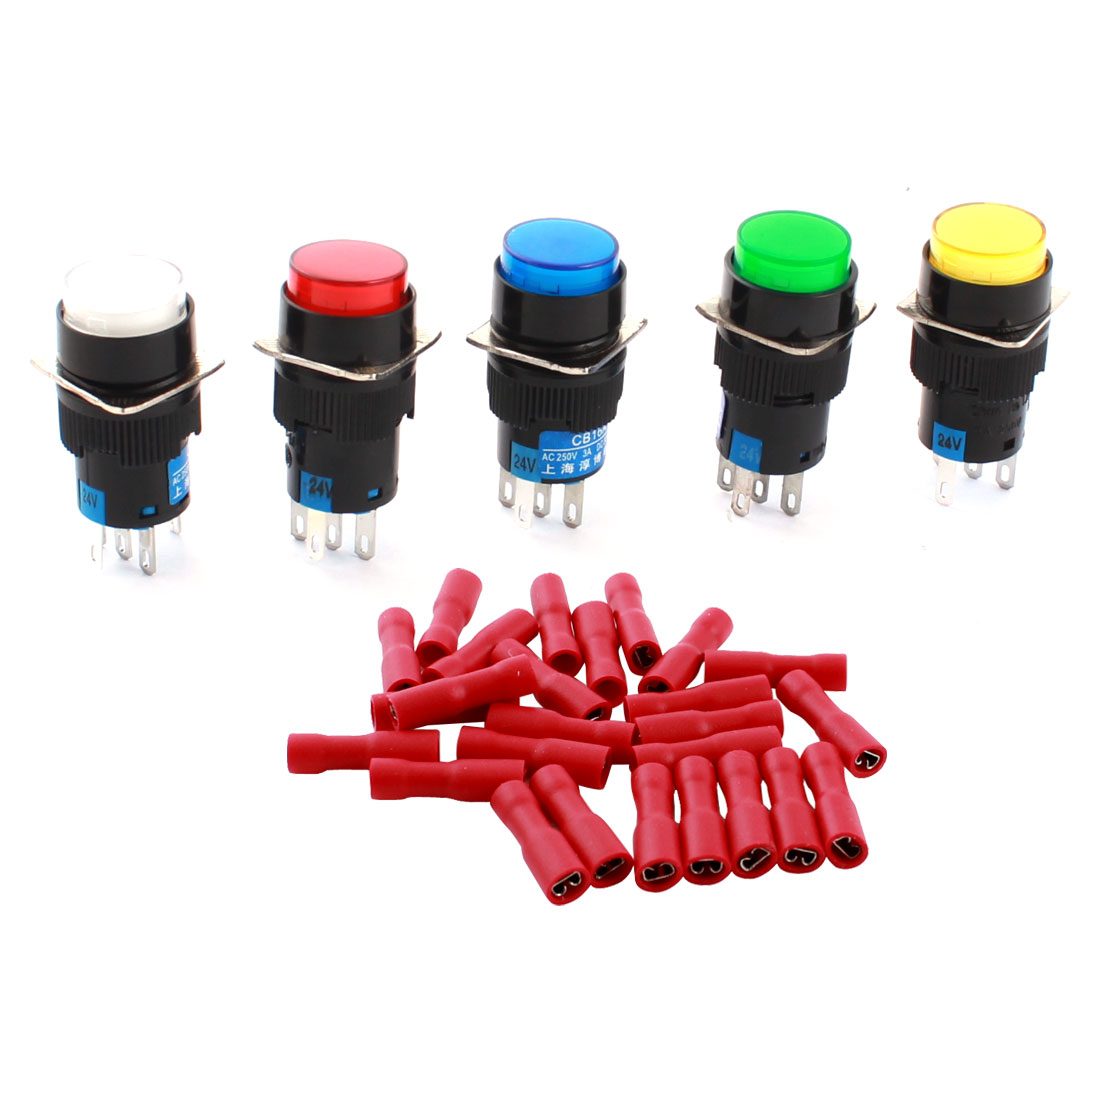 5PCS DC 24V Mixed Color Indicator Light Lamp 5Pins 16mm Threaded Panel Mounted SPDT Self Locking Round Pushbutton Switch + 25pcs Crimp Connectors